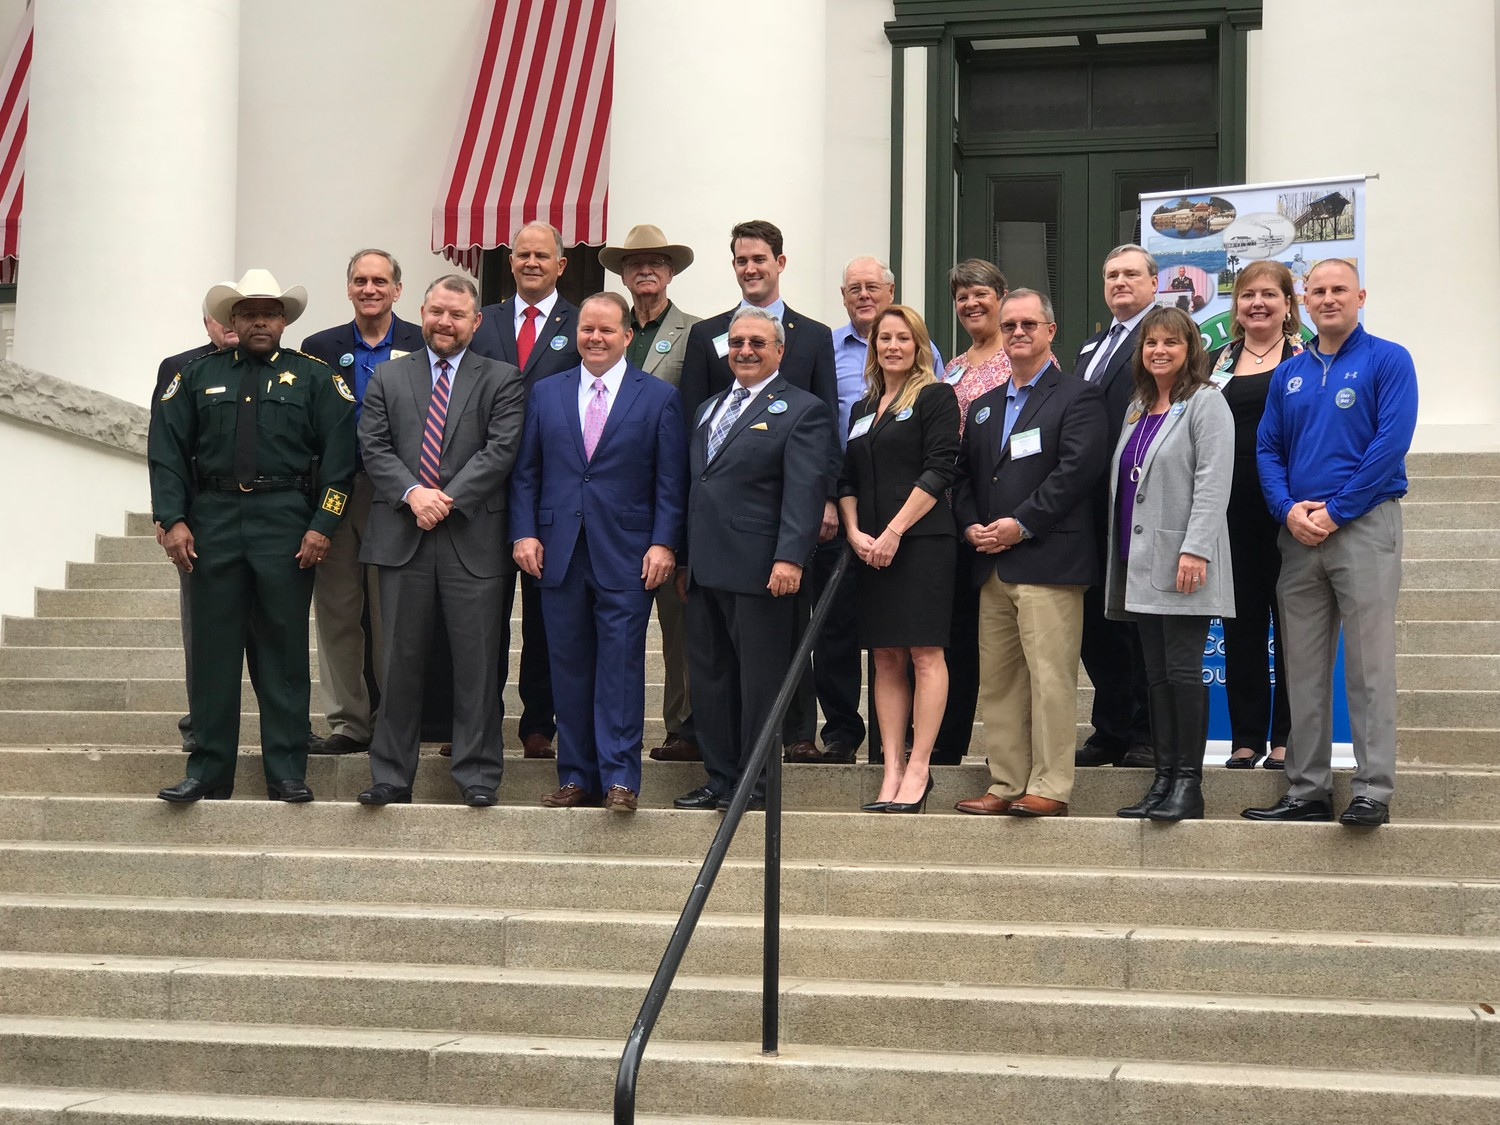 Sherriff Daryl Daniels, Senator Rob Bradley, Representative Tavis Cummings, Commissioner Wayne Bolla, Clerk of the Court Tara Green, Property Appraiser Roger Suggs, School Board Member Janice Kerekes, School Board Superintendant Addison Davis, back row, Orange Park Town Councilman Ron Raymond, County Board of Commissioner Mike Cella, Representative Bobby Payne, Board of County Commissioner Gayward Hendry, Board of County Commissioner Chair Gavin Rollins, Penney Farms Councilman Tom DeVille, School Board member Mary Bolla, Orange Park Town Councilman Alan Watt, Orange Park Town Councilwoman Connie Thomas.